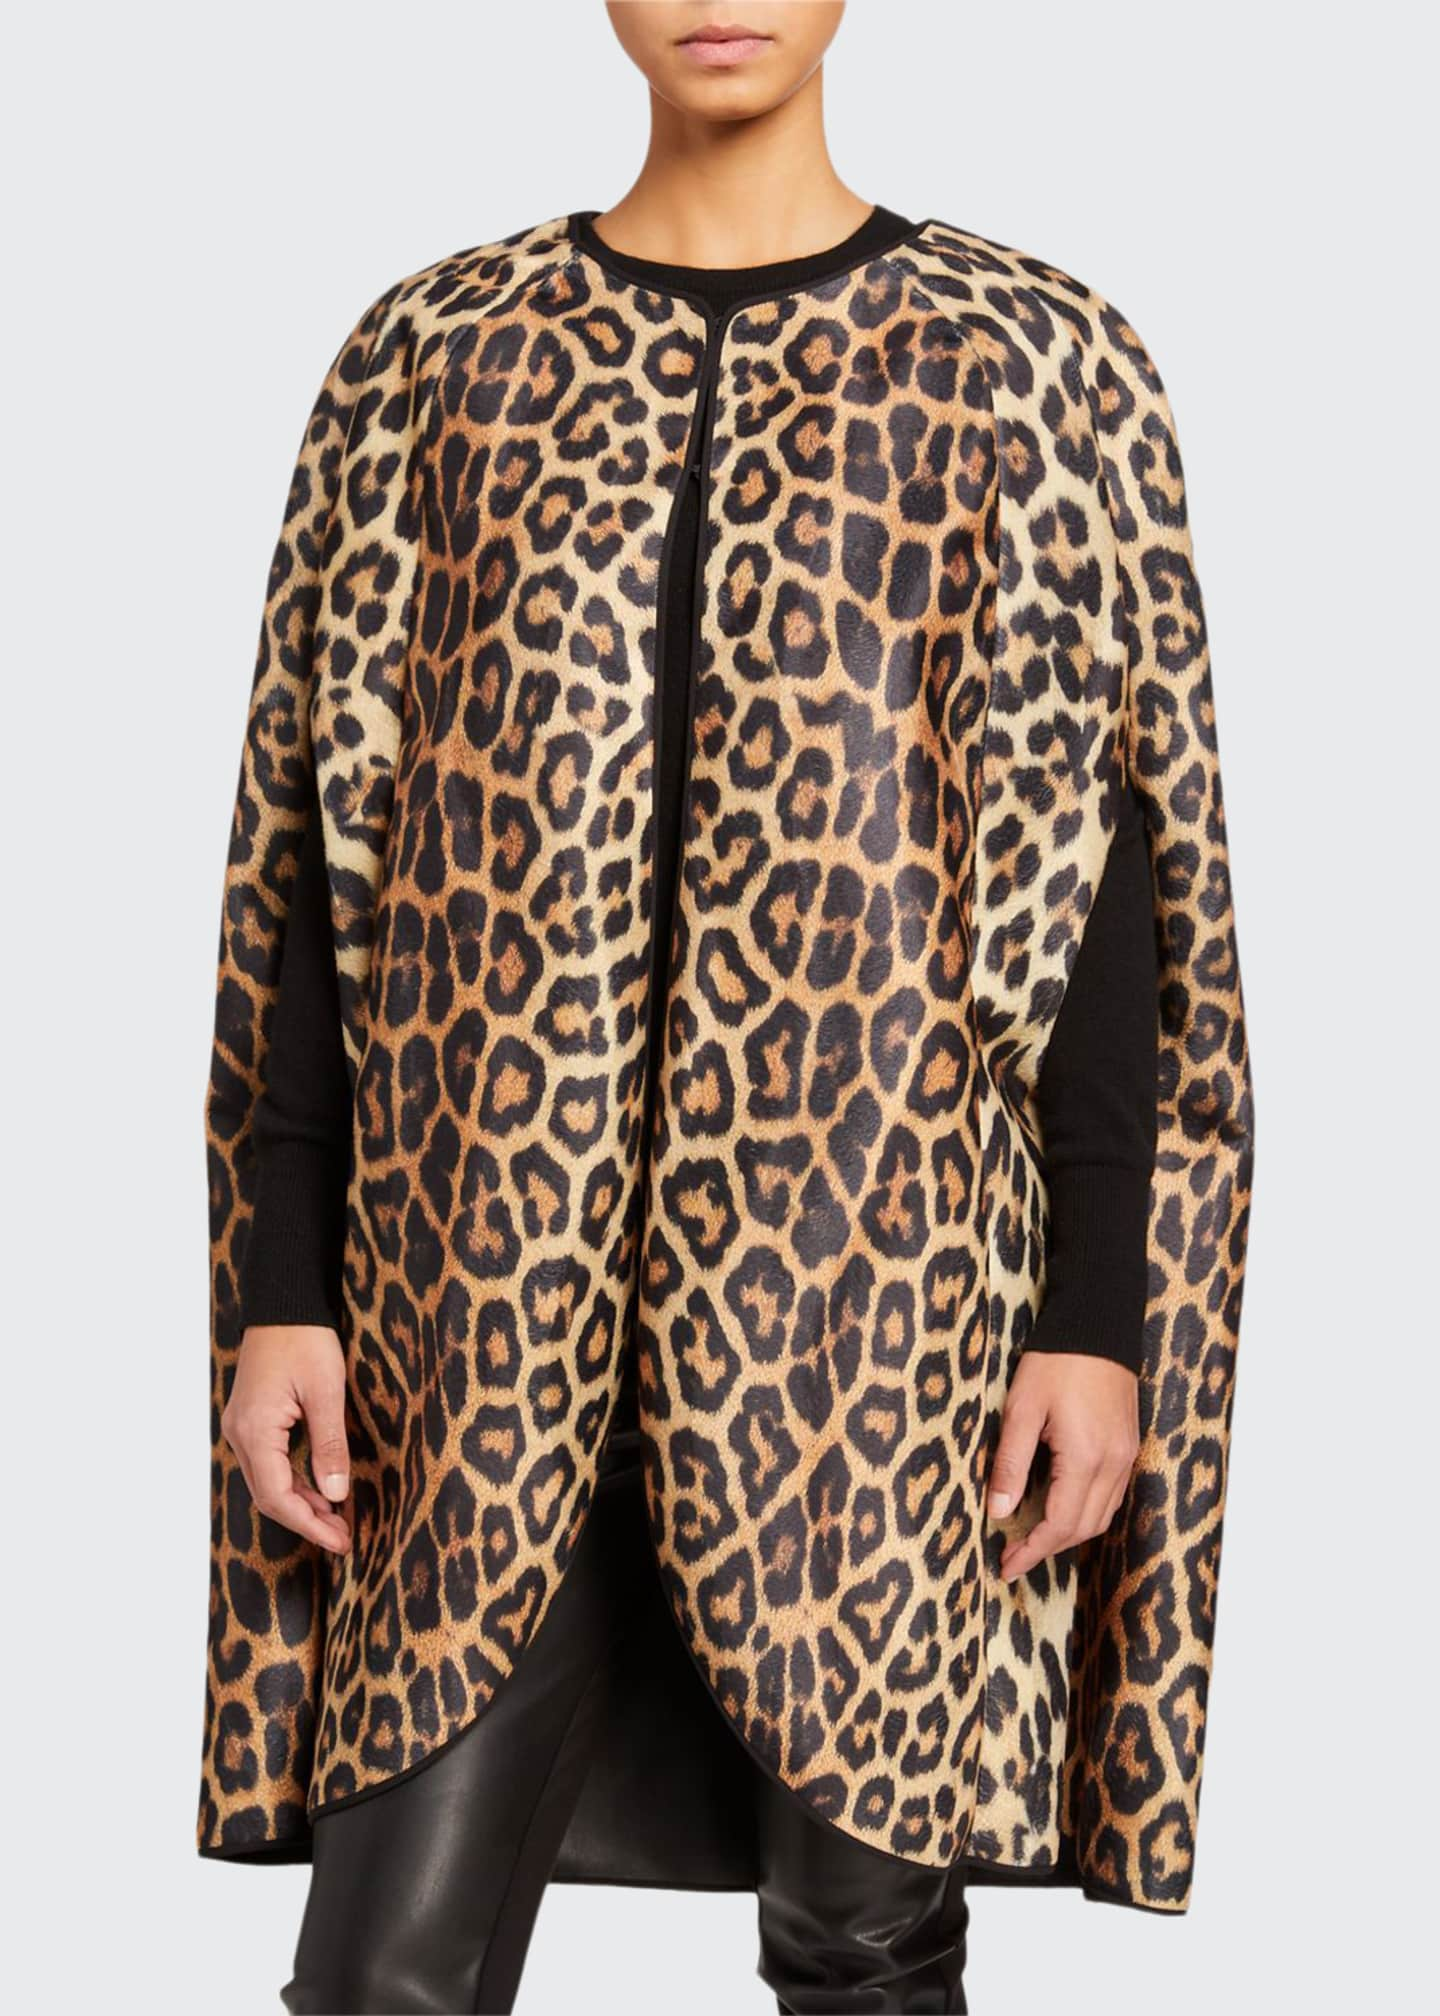 House of Fluff Leopard Print Faux Fur Cape